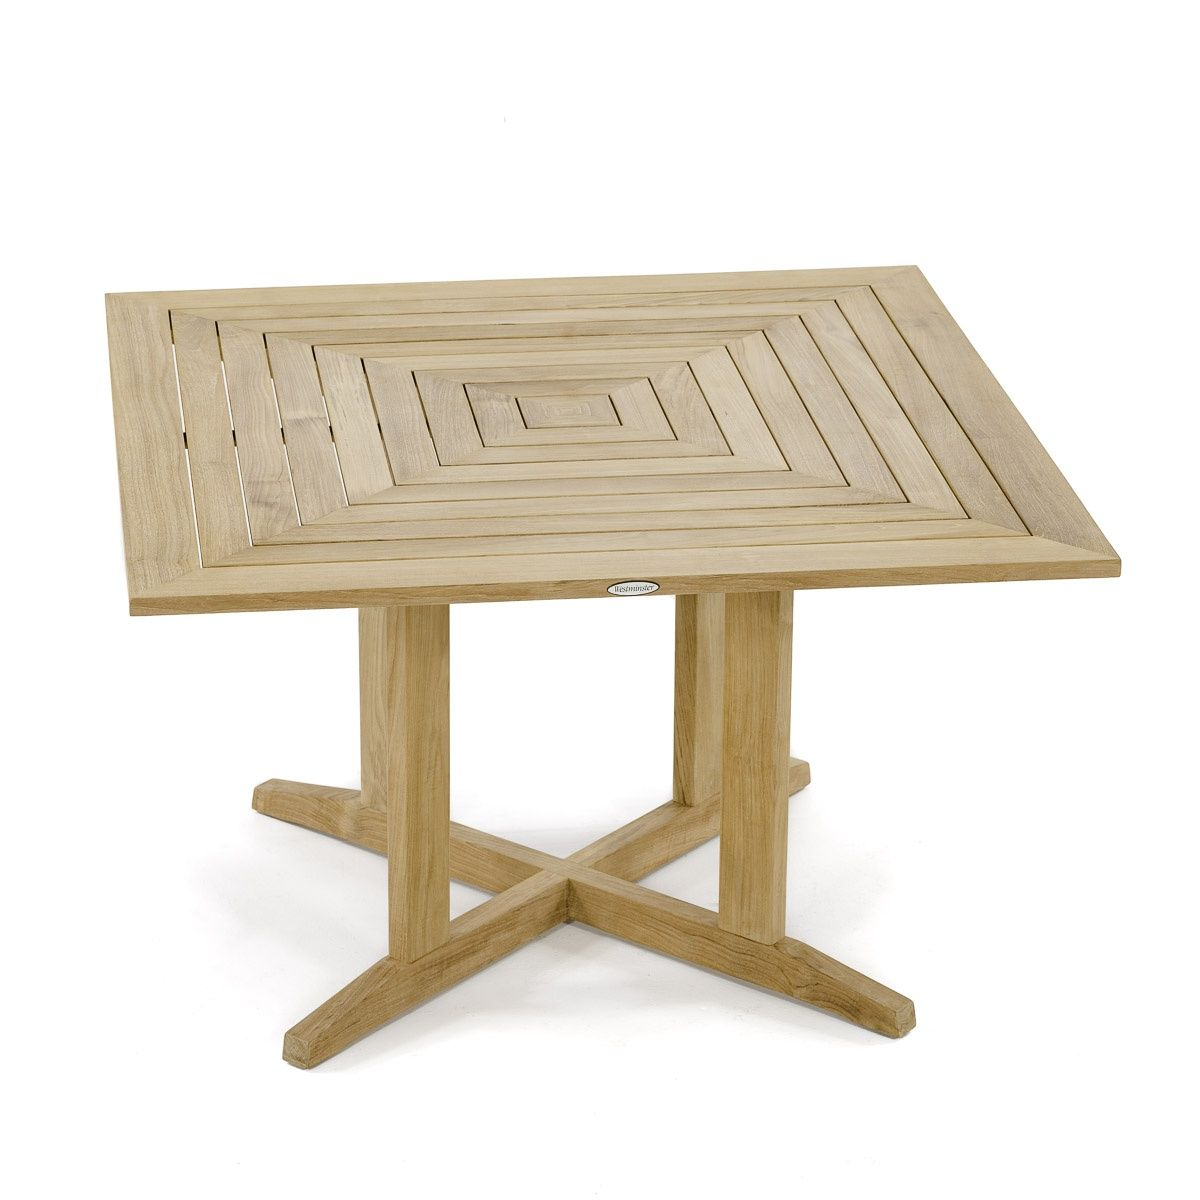 Pyramid 48in Square Teak Outdoor Dining Table Westminster Teak